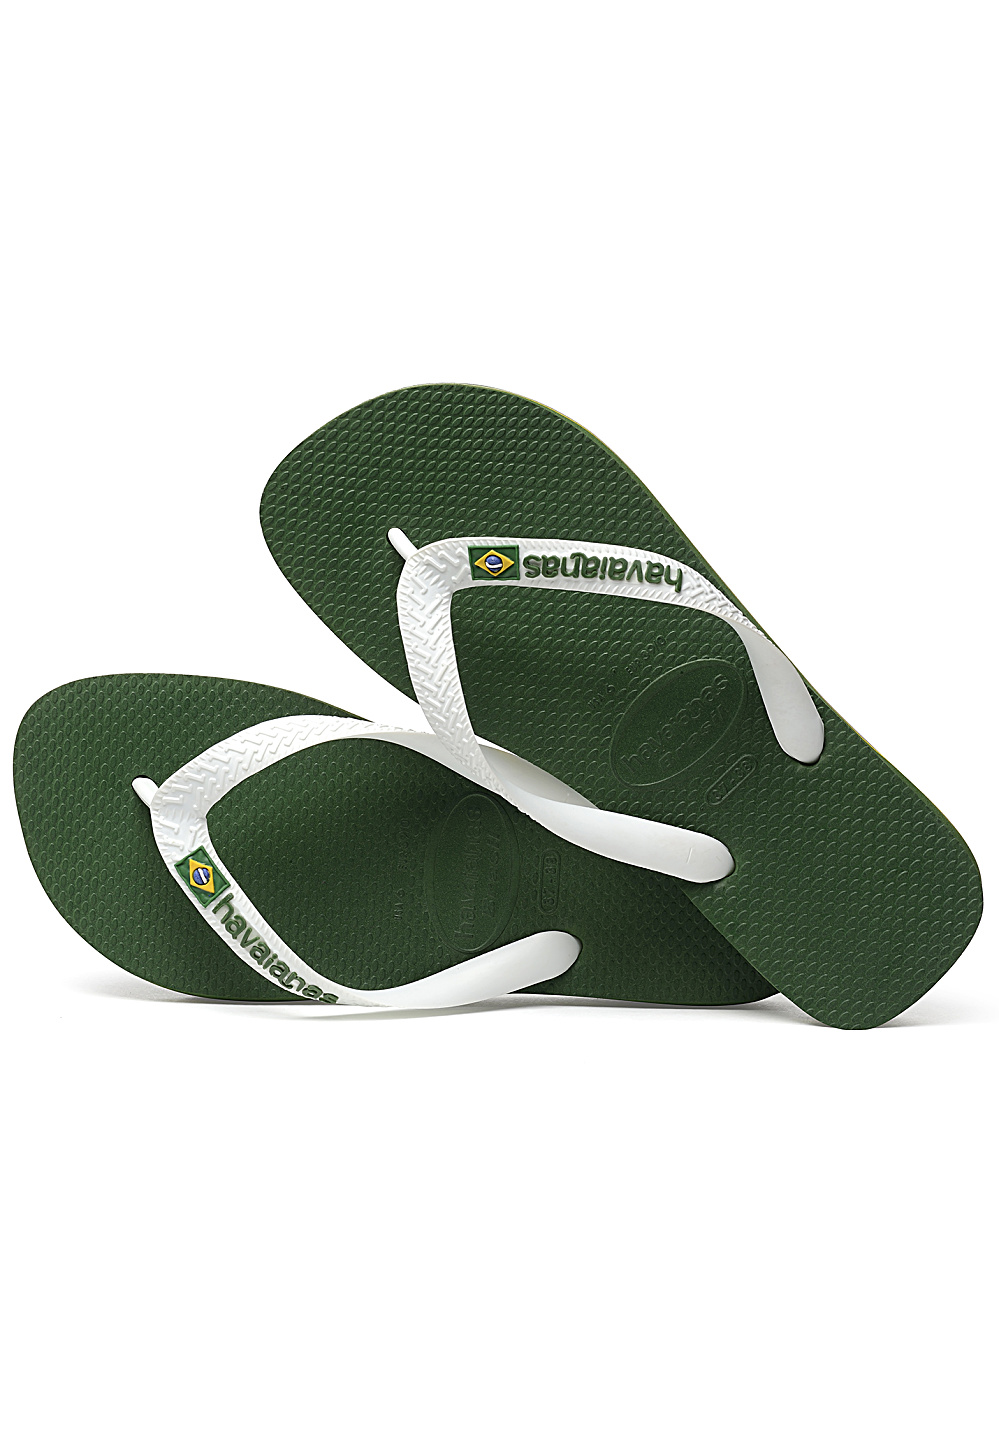 7d0fae87246f3 HAVAIANAS Brasil Logo - Sandals - Green - Planet Sports